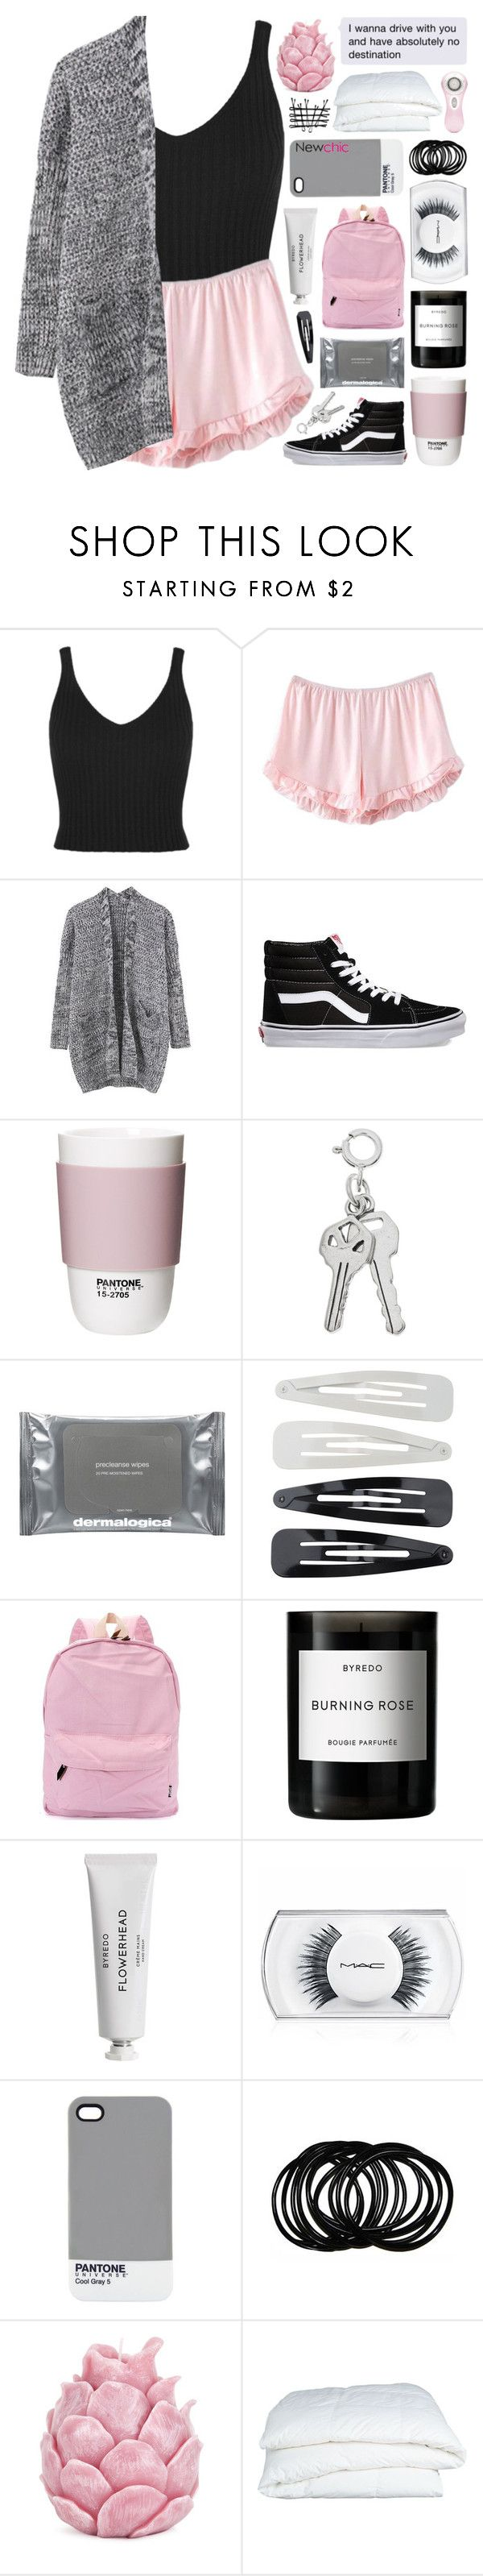 """""""Madrid. NEWCHIC"""" by untake-n ❤ liked on Polyvore featuring Vans, ROOM COPENHAGEN, Dermalogica, Forever 21, Byredo, MAC Cosmetics, Pantone, Zara Home, Crate and Barrel and Clarisonic"""